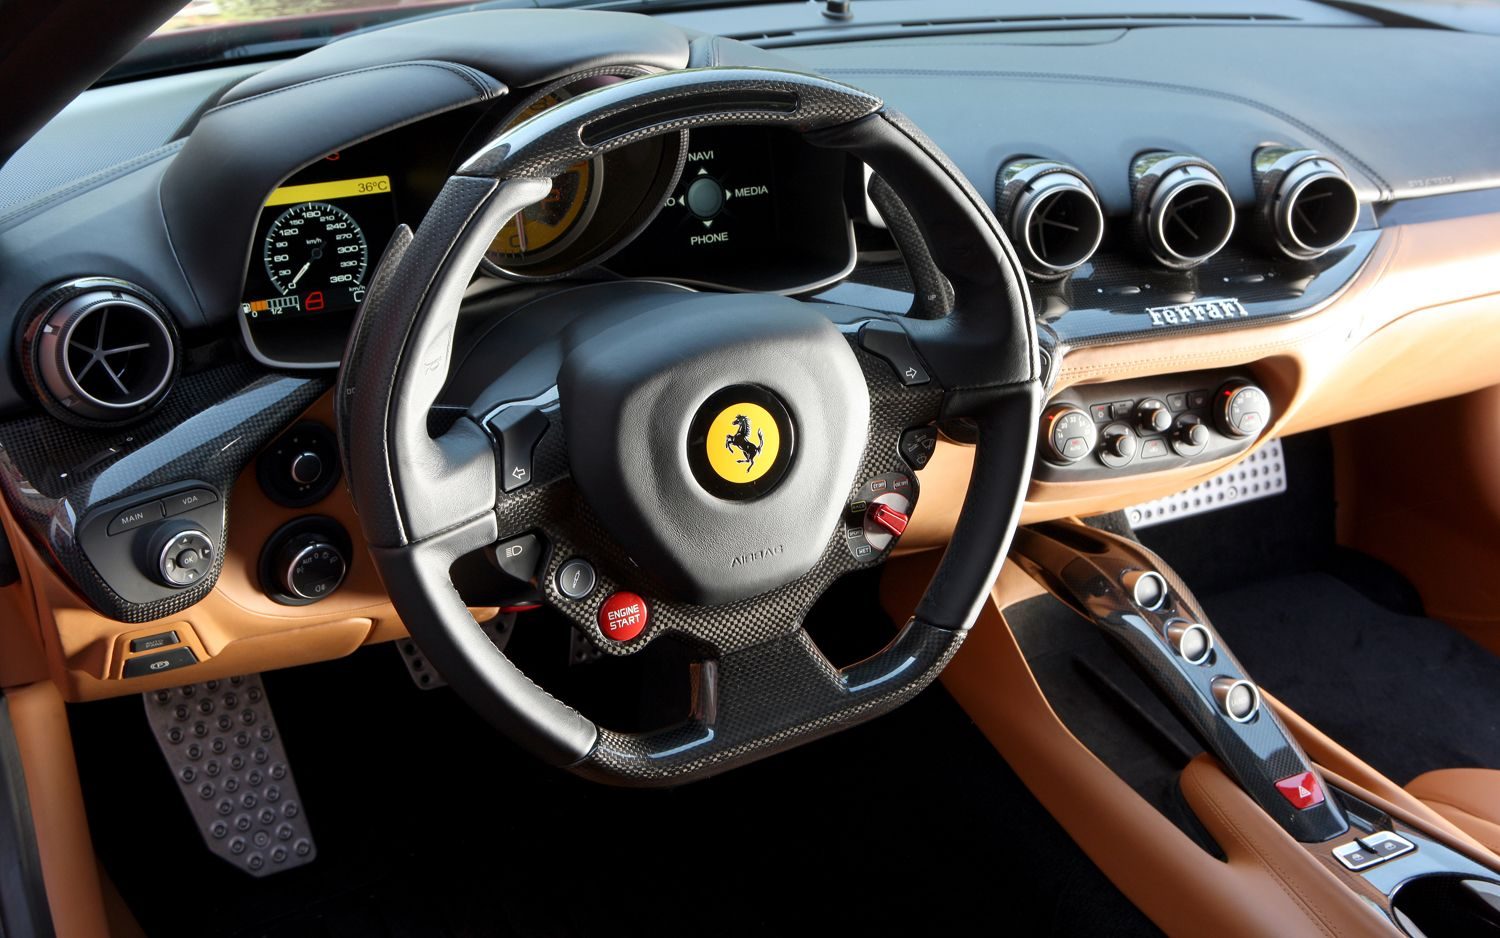 Ferrari F12 Berlinetta interior #4